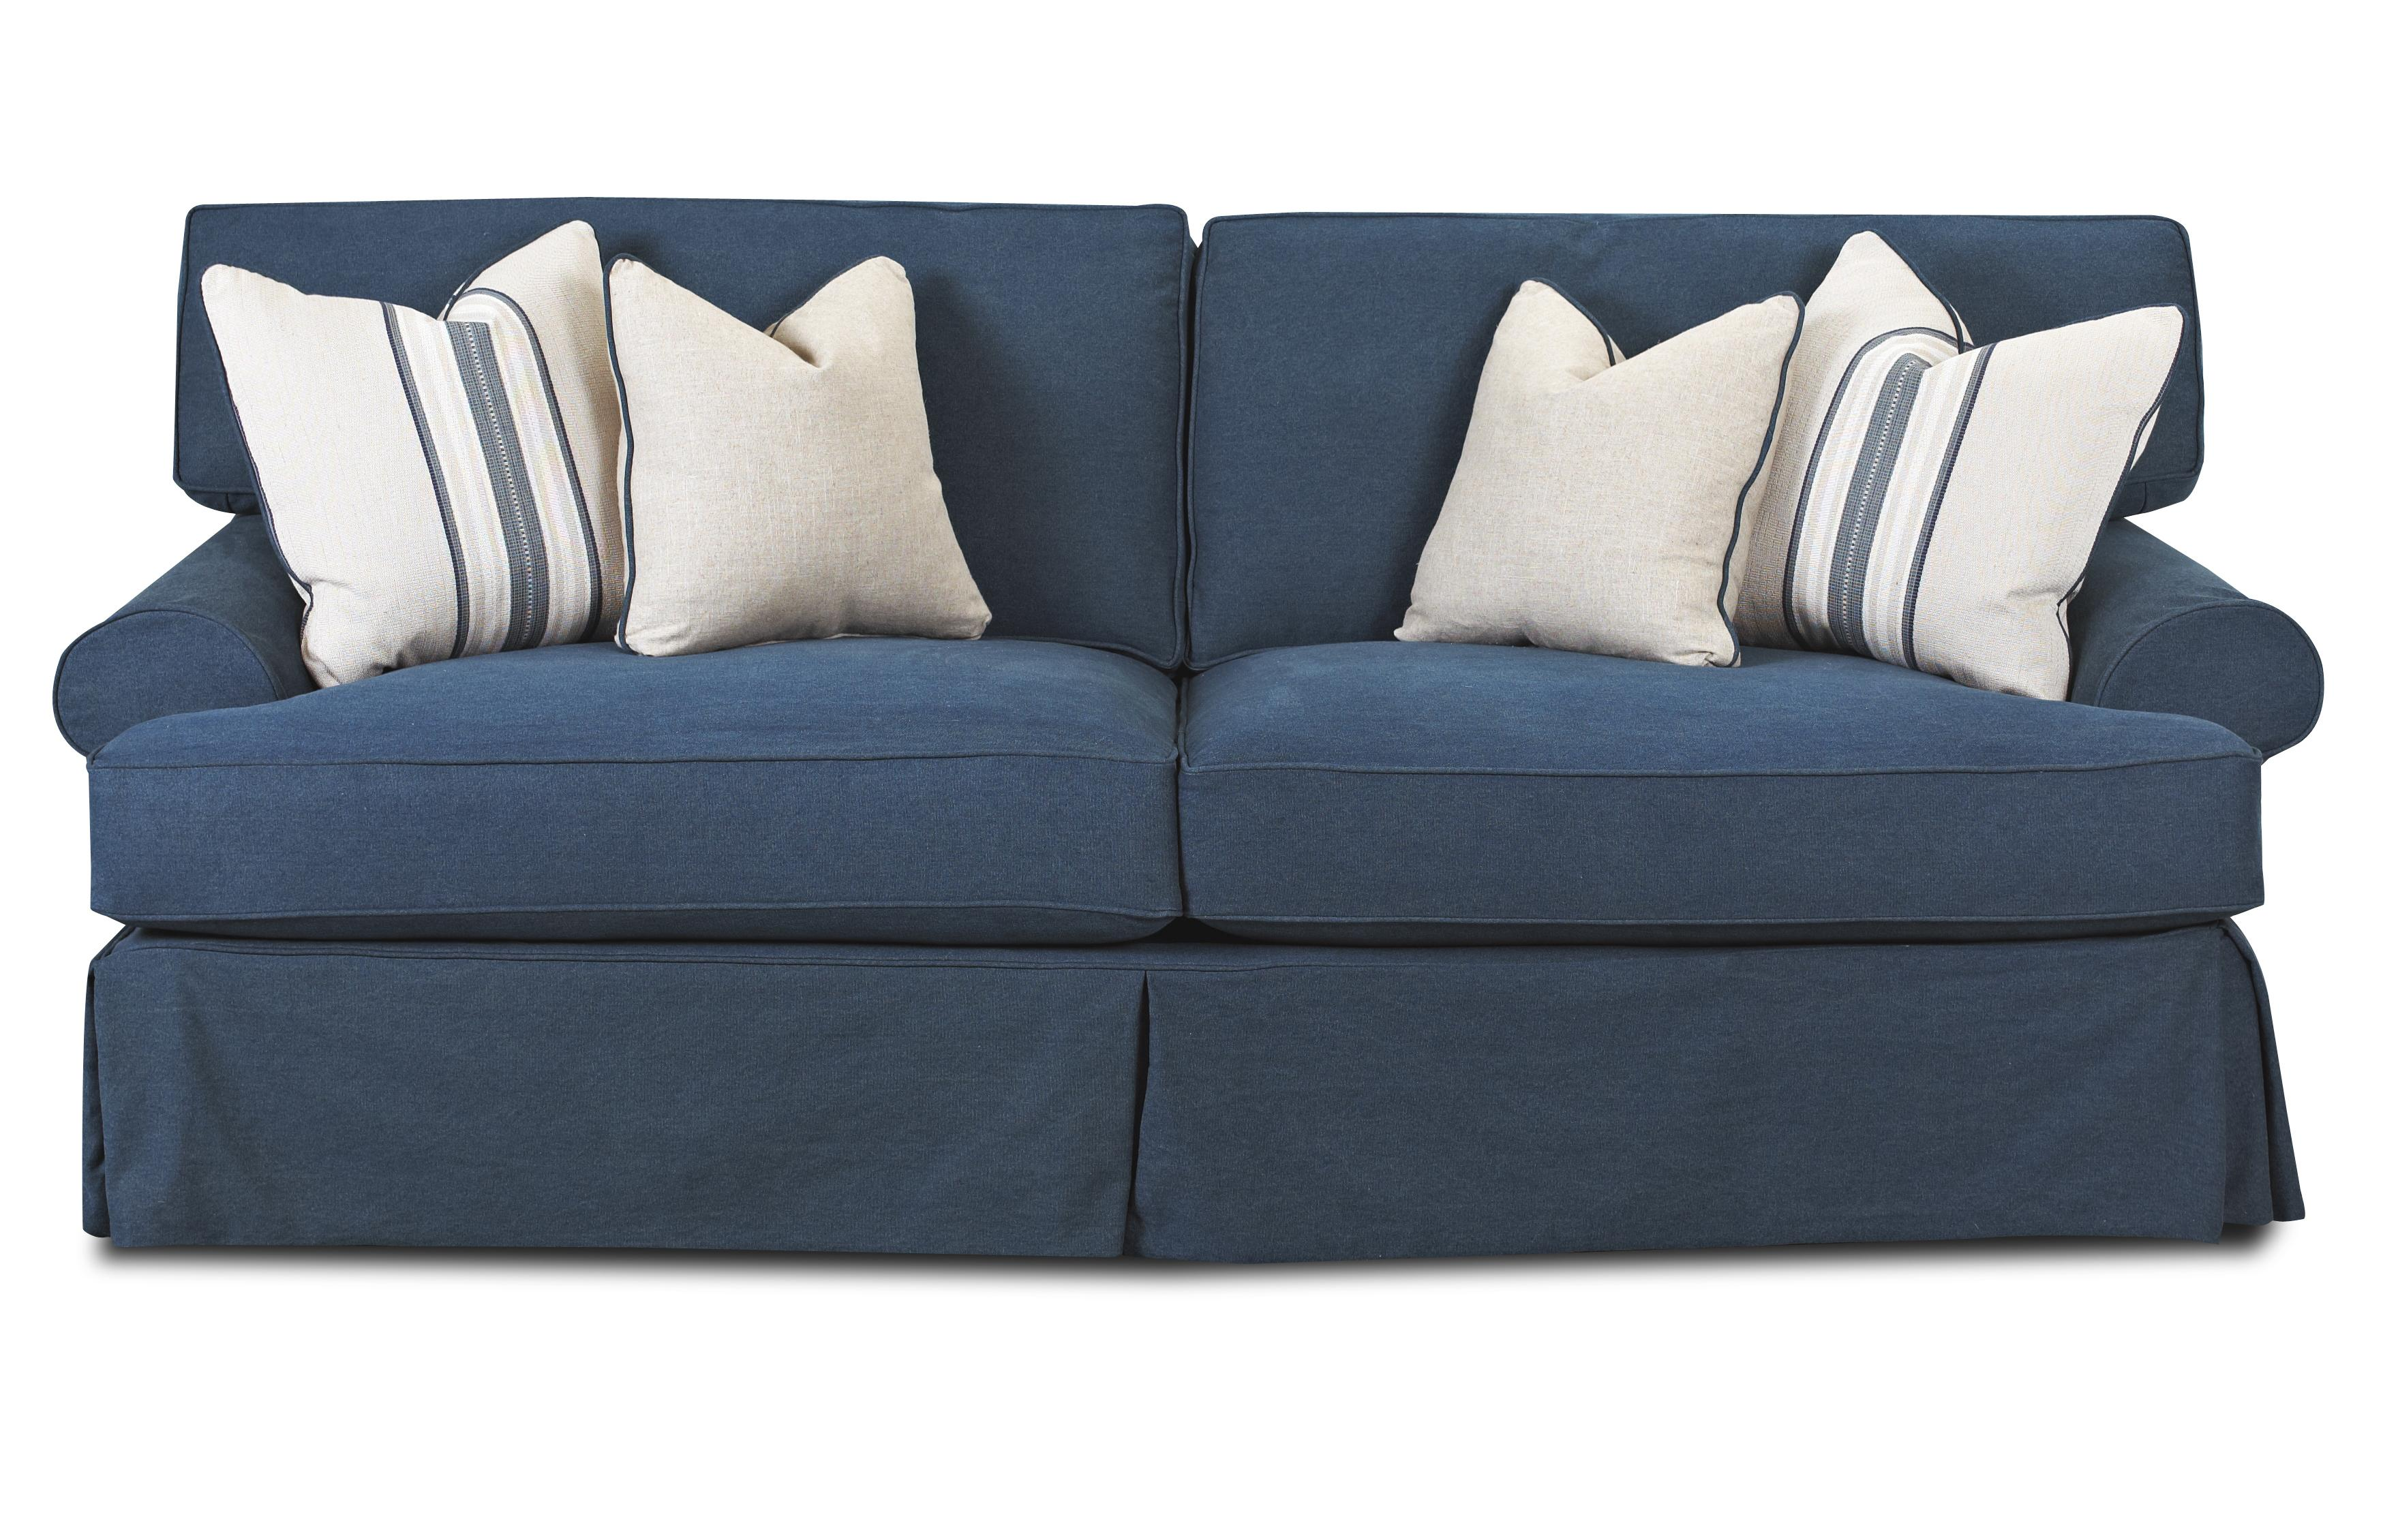 Sofa with Blend Down Cushions by Klaussner